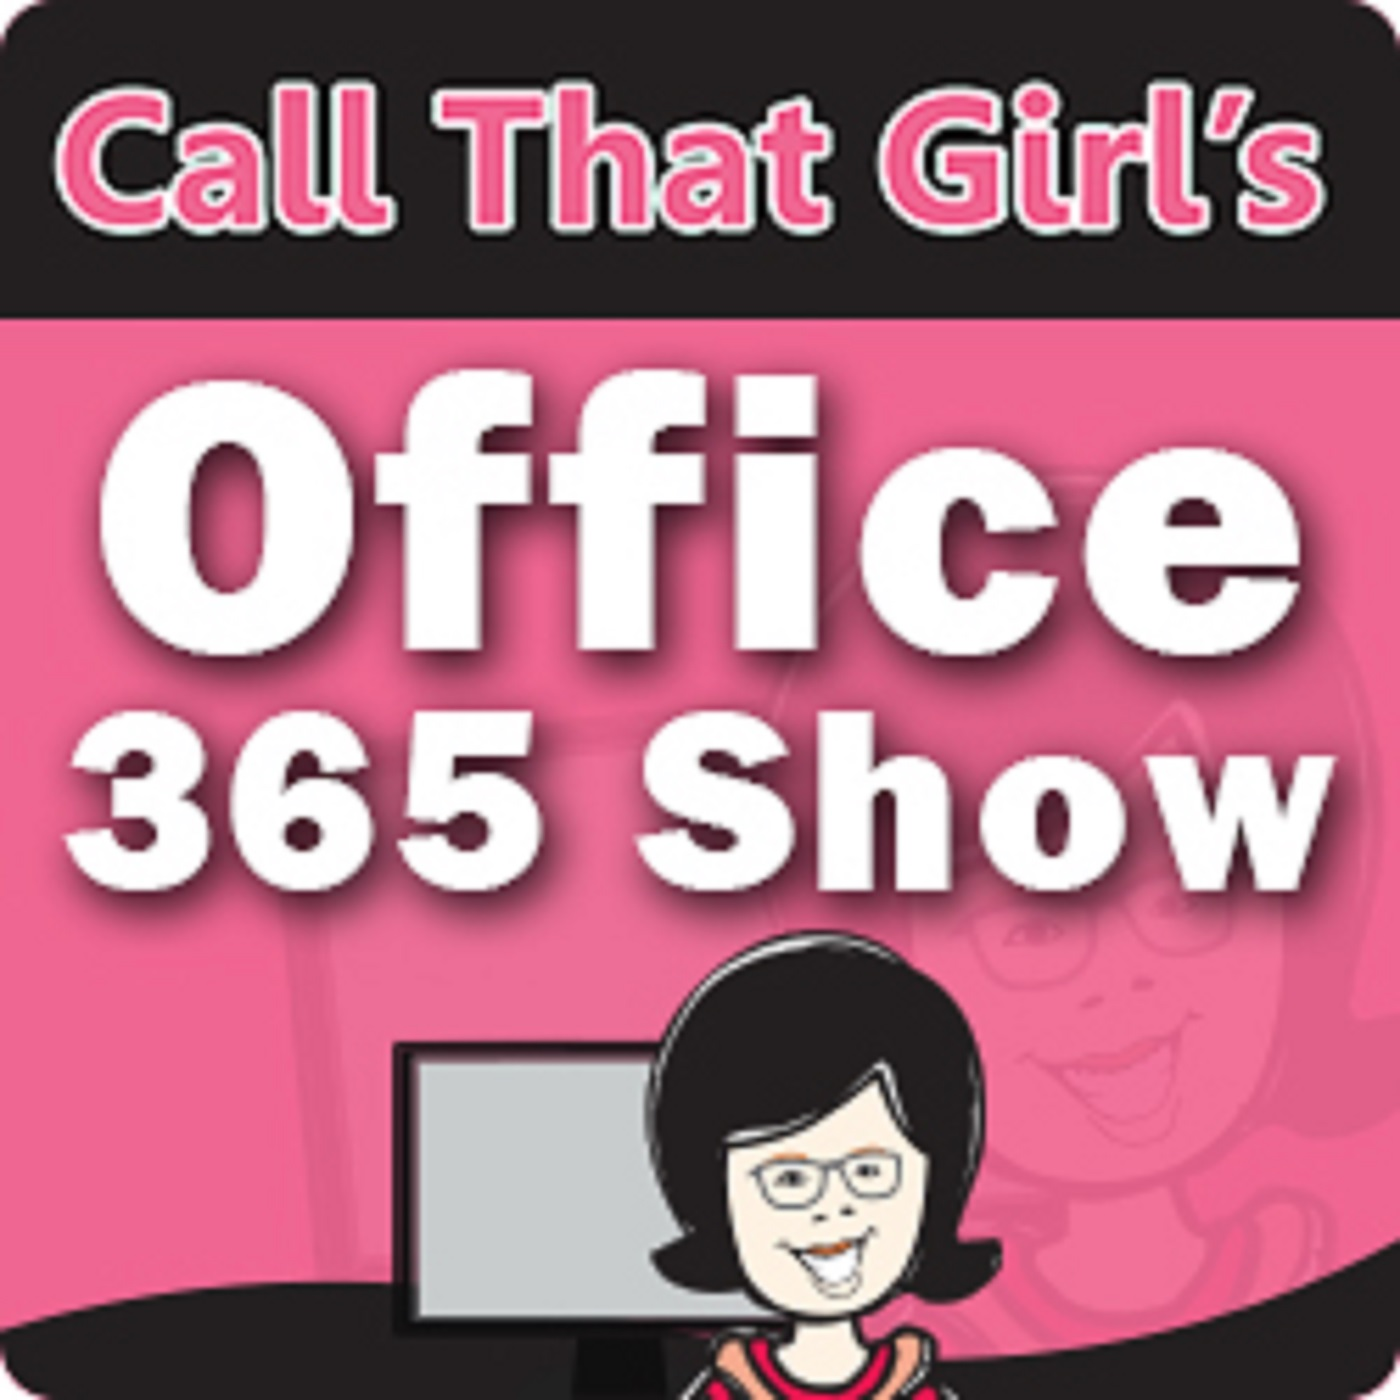 The Call That Girl Office 365 Show